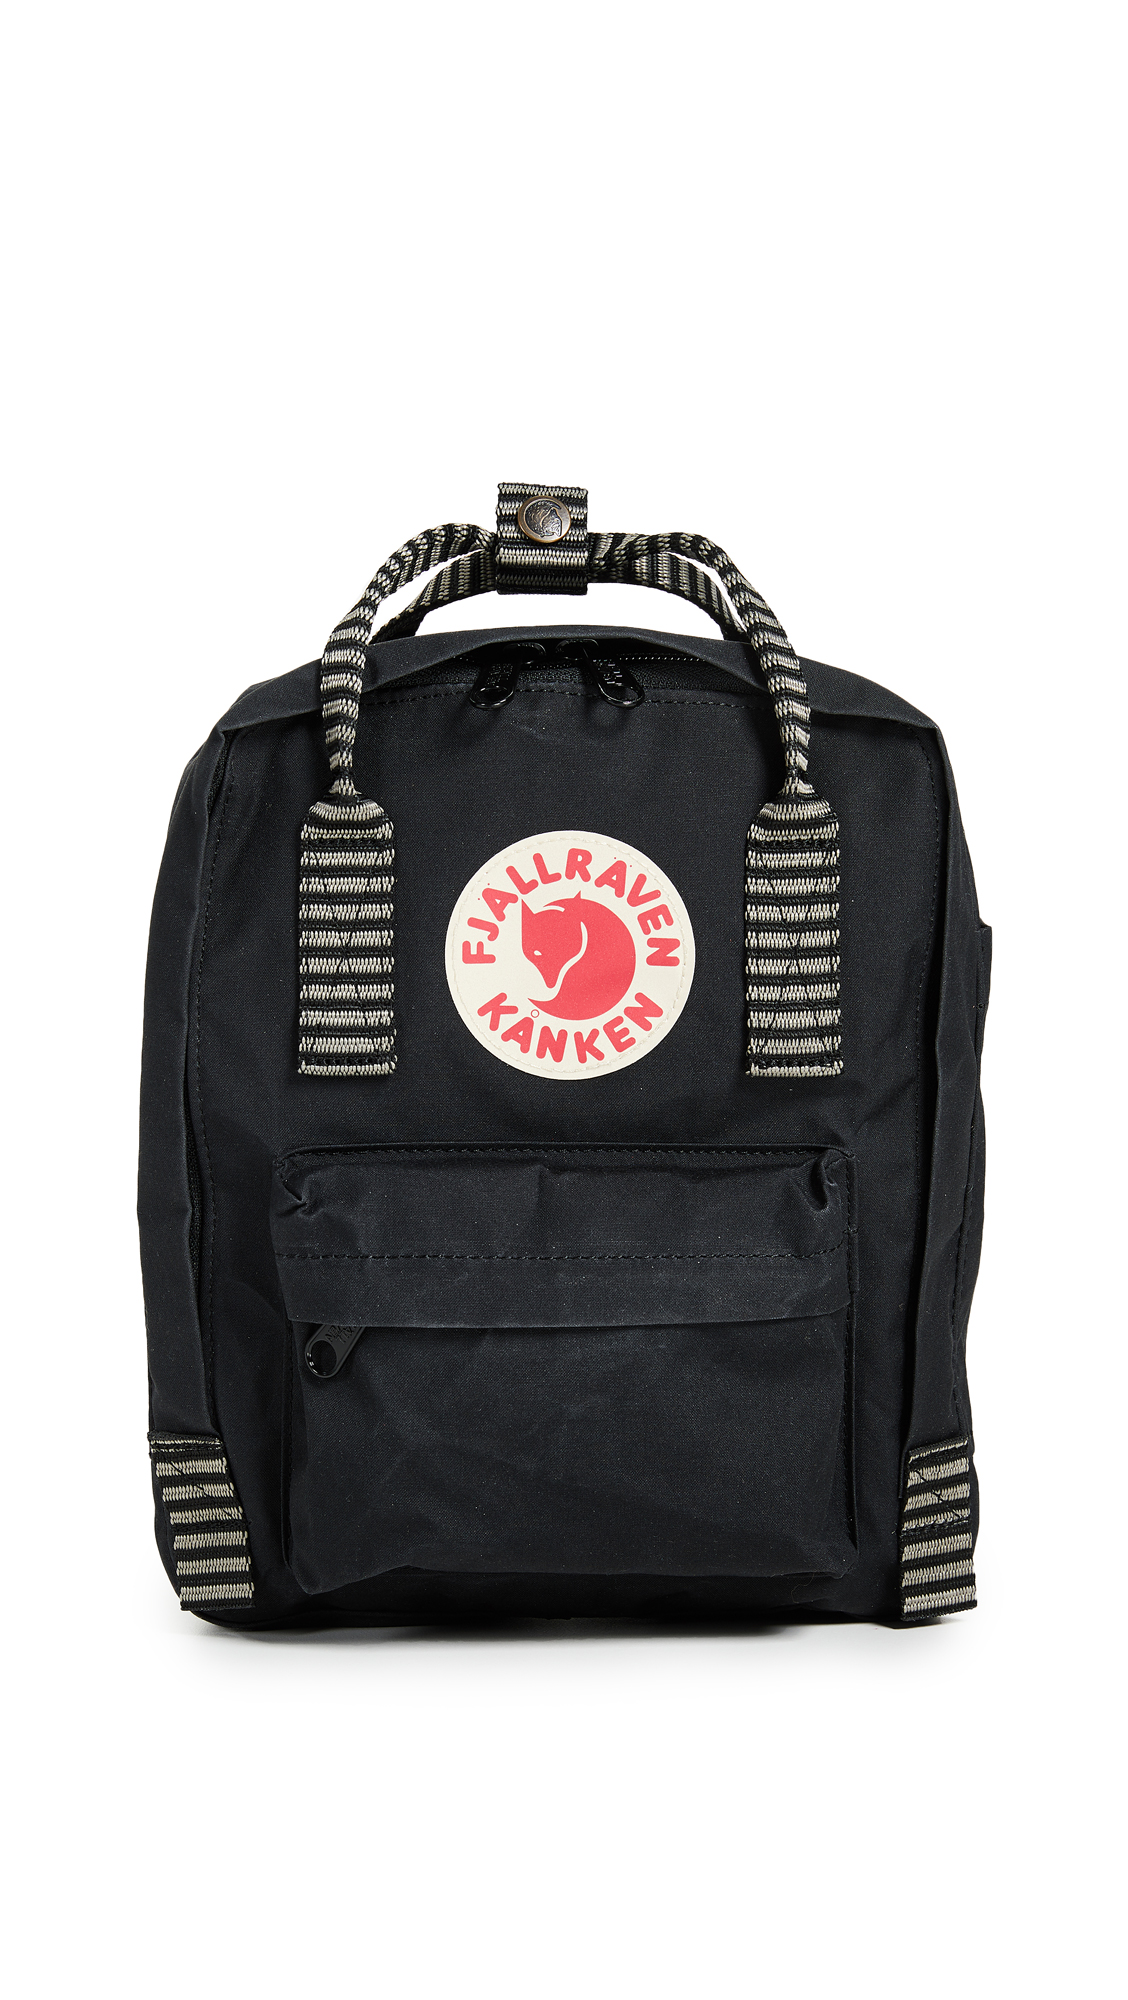 FJALL RAVEN Kanken Mini Backpack in Black/Striped